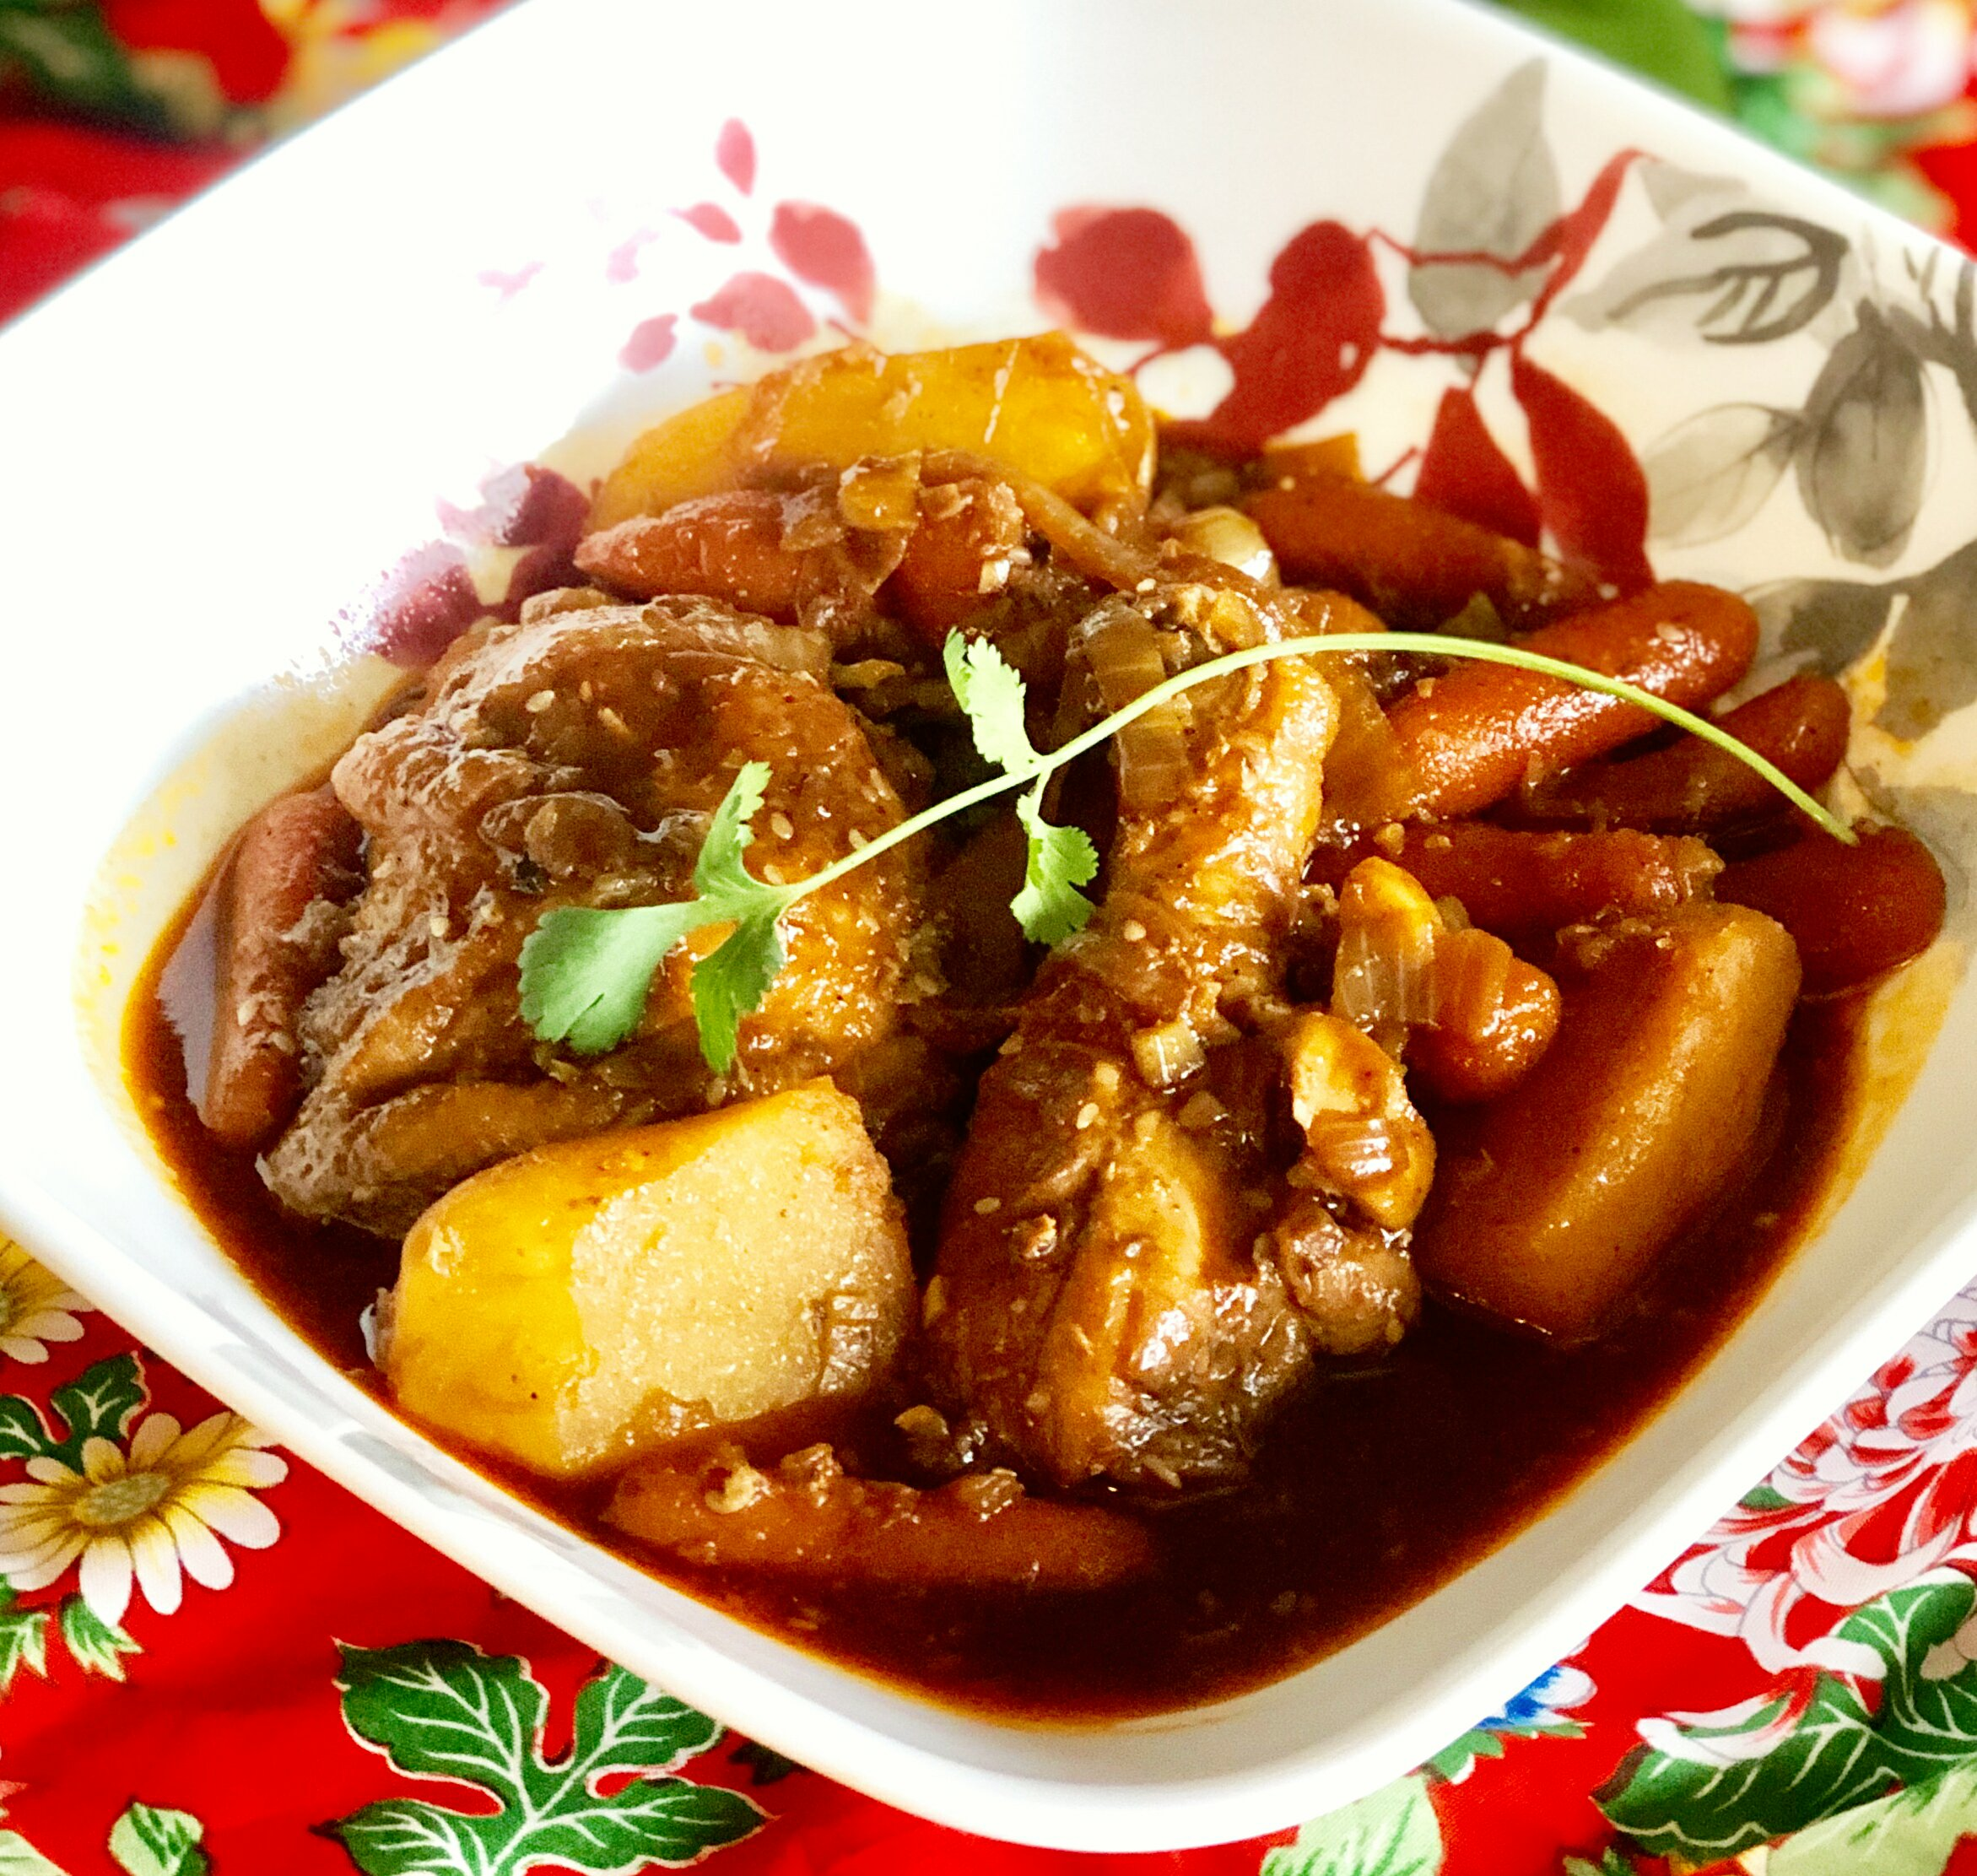 """""""This Korean chicken main dish with potatoes, onions, and carrots is served over a bed of rice,"""" says Mark Darder. """"Seasoned with soy sauce, sesame seeds, and, of course, garlic."""""""